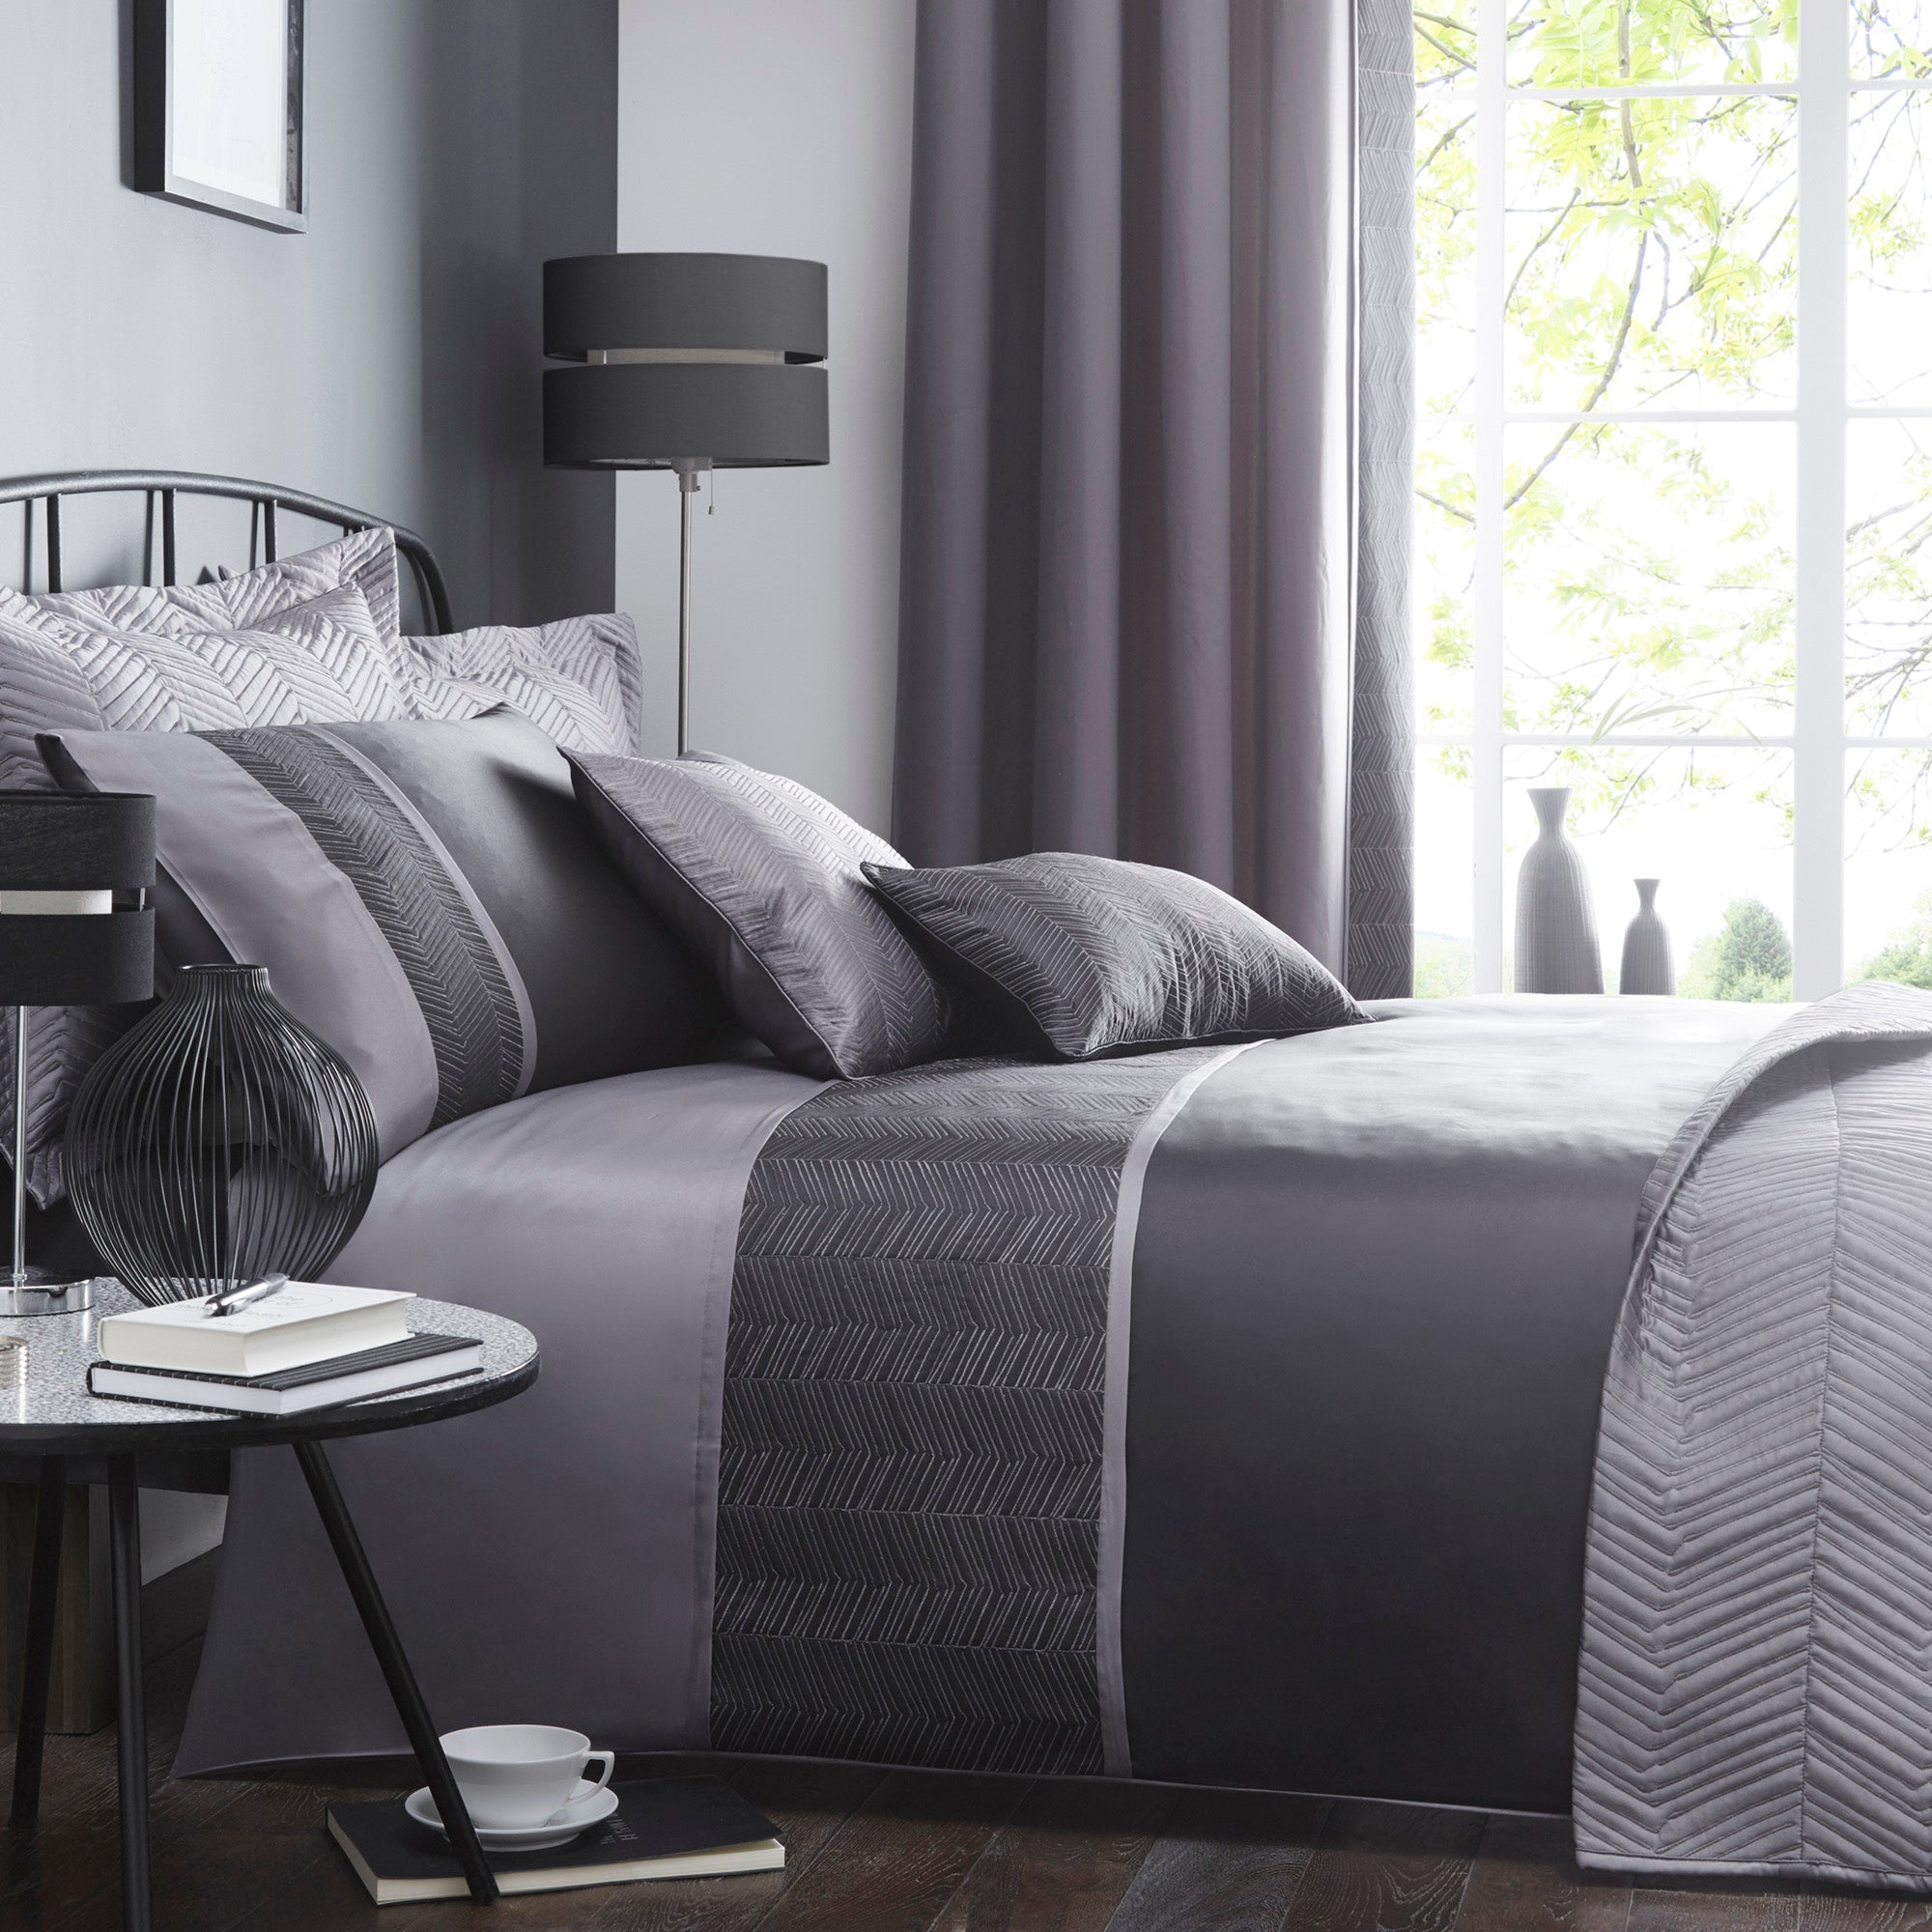 Owen Black Bed Linen Collection